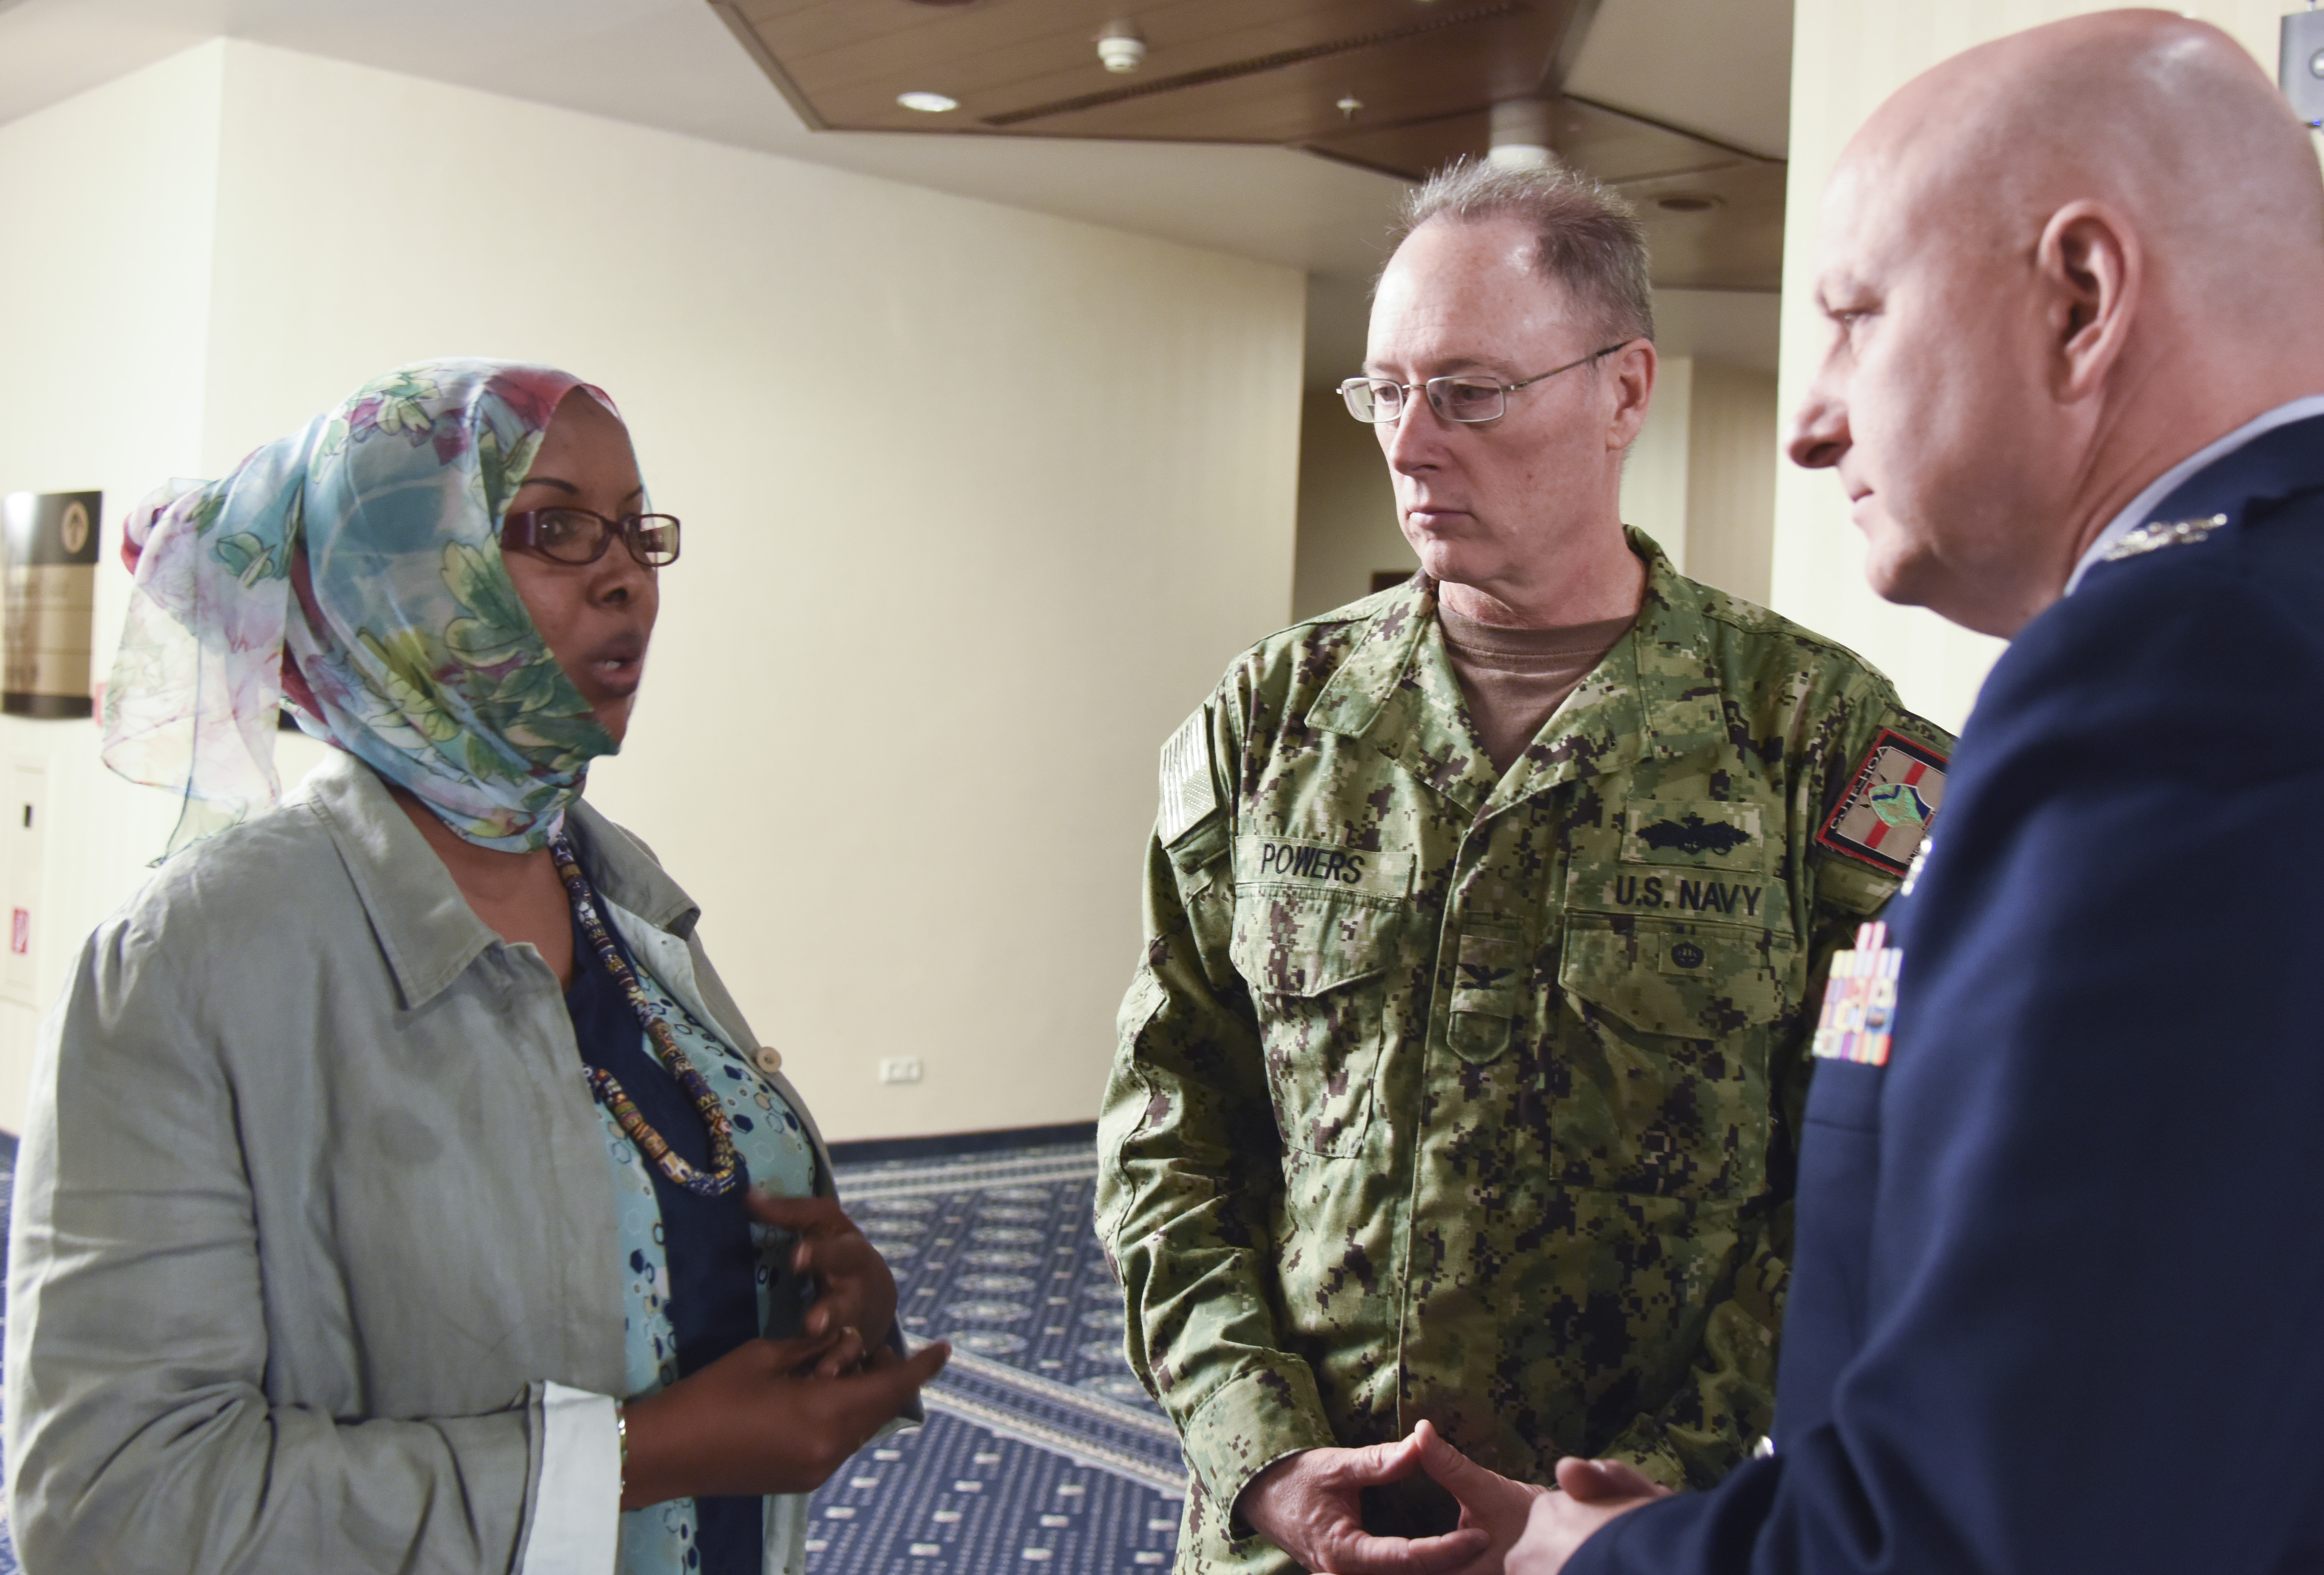 Djibouti Armed Forces Lt. Amina Ahmed Farah, Combined Joint Task Force-Horn of Africa Capt. Roland Powers and U.S. Air National Guard Col. Mike Cooper, discuss priorities in medical training at Ramstein AB, Germany, Aug. 25, 2015.  The goal of this symposium was for African partners to possess greater medical support capacity and the ability to sustain medical readiness through African institutions.  (U.S. Air Force photo by Master Sgt. Charlene M. Spade/released)